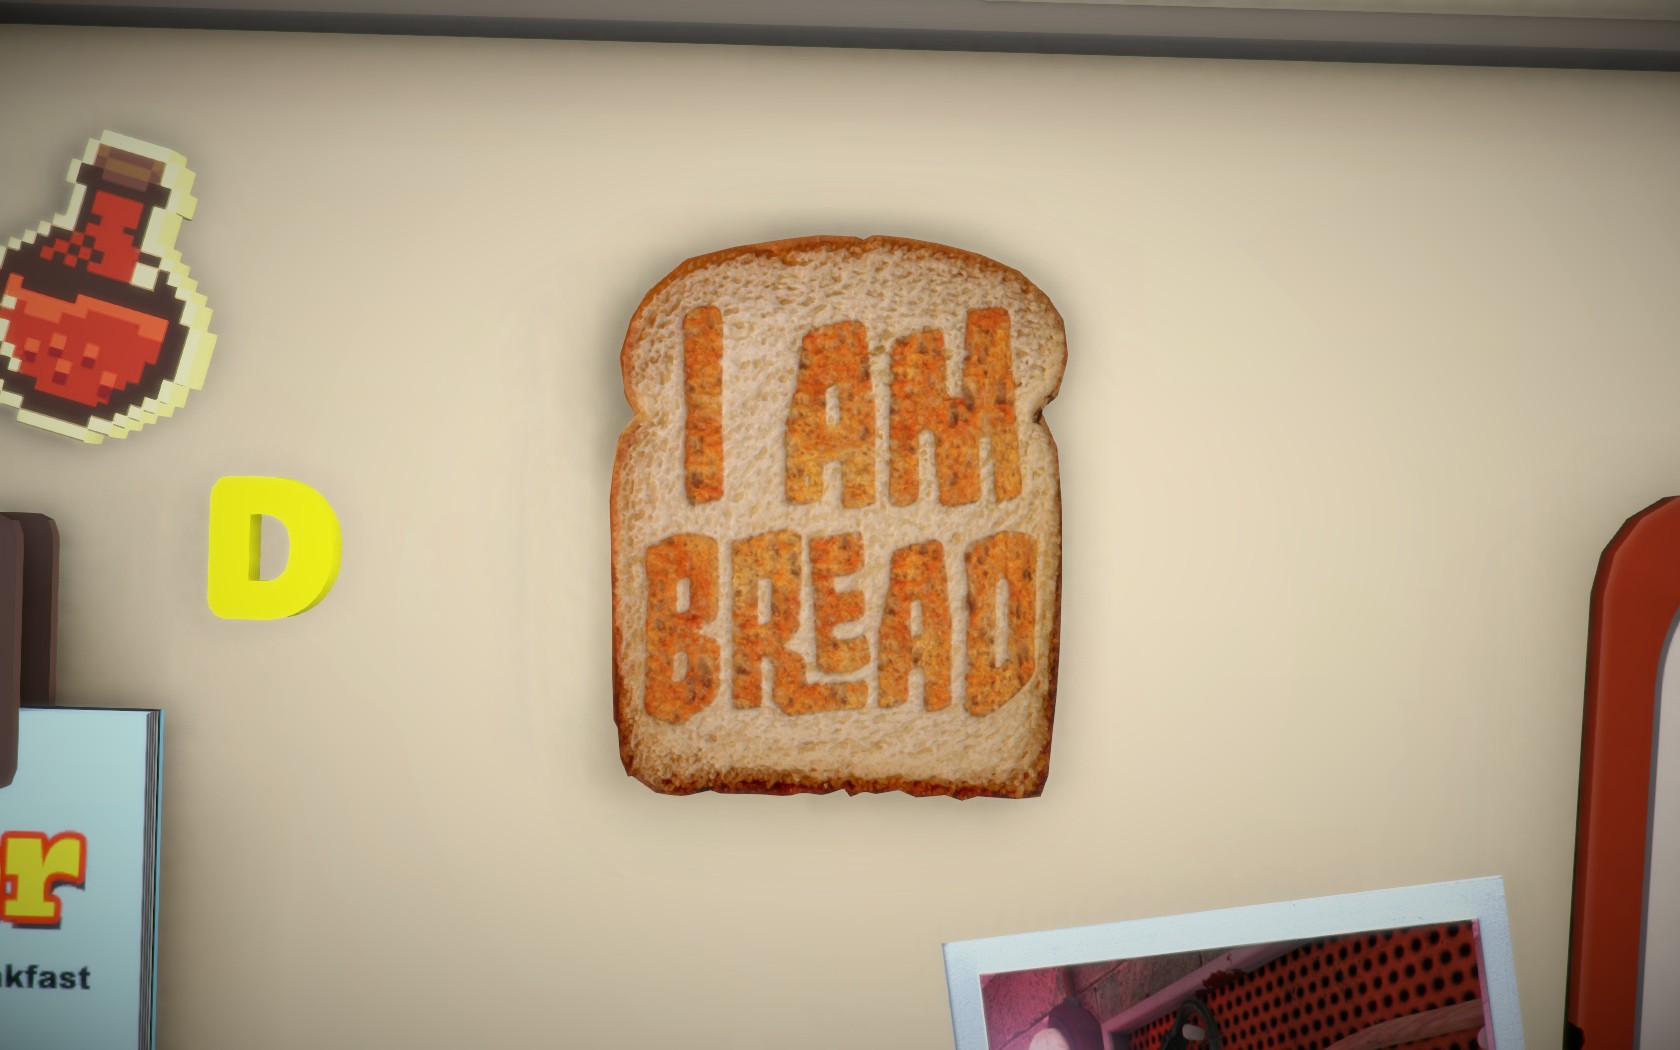 'I Am Bread' Allows You To Do Exactly What You Think It Does